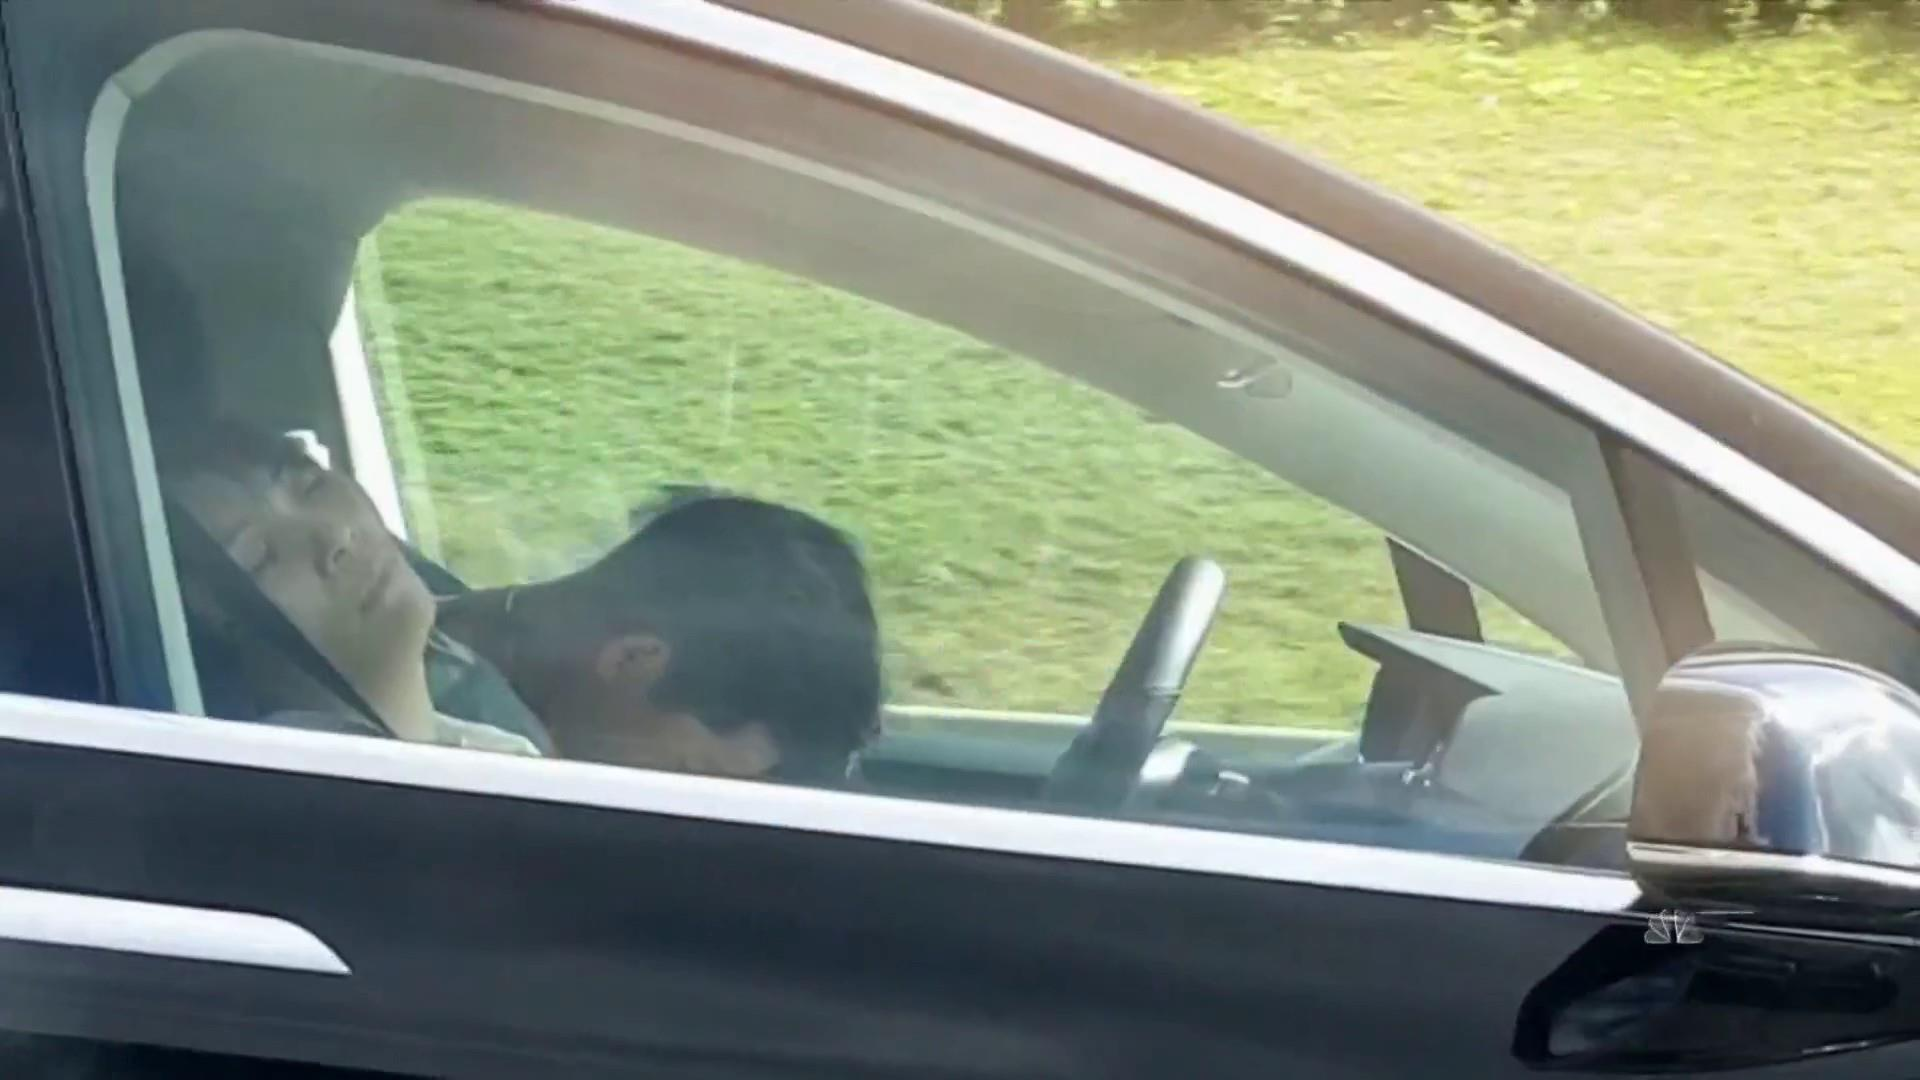 Tesla driver caught on camera apparently asleep at the wheel